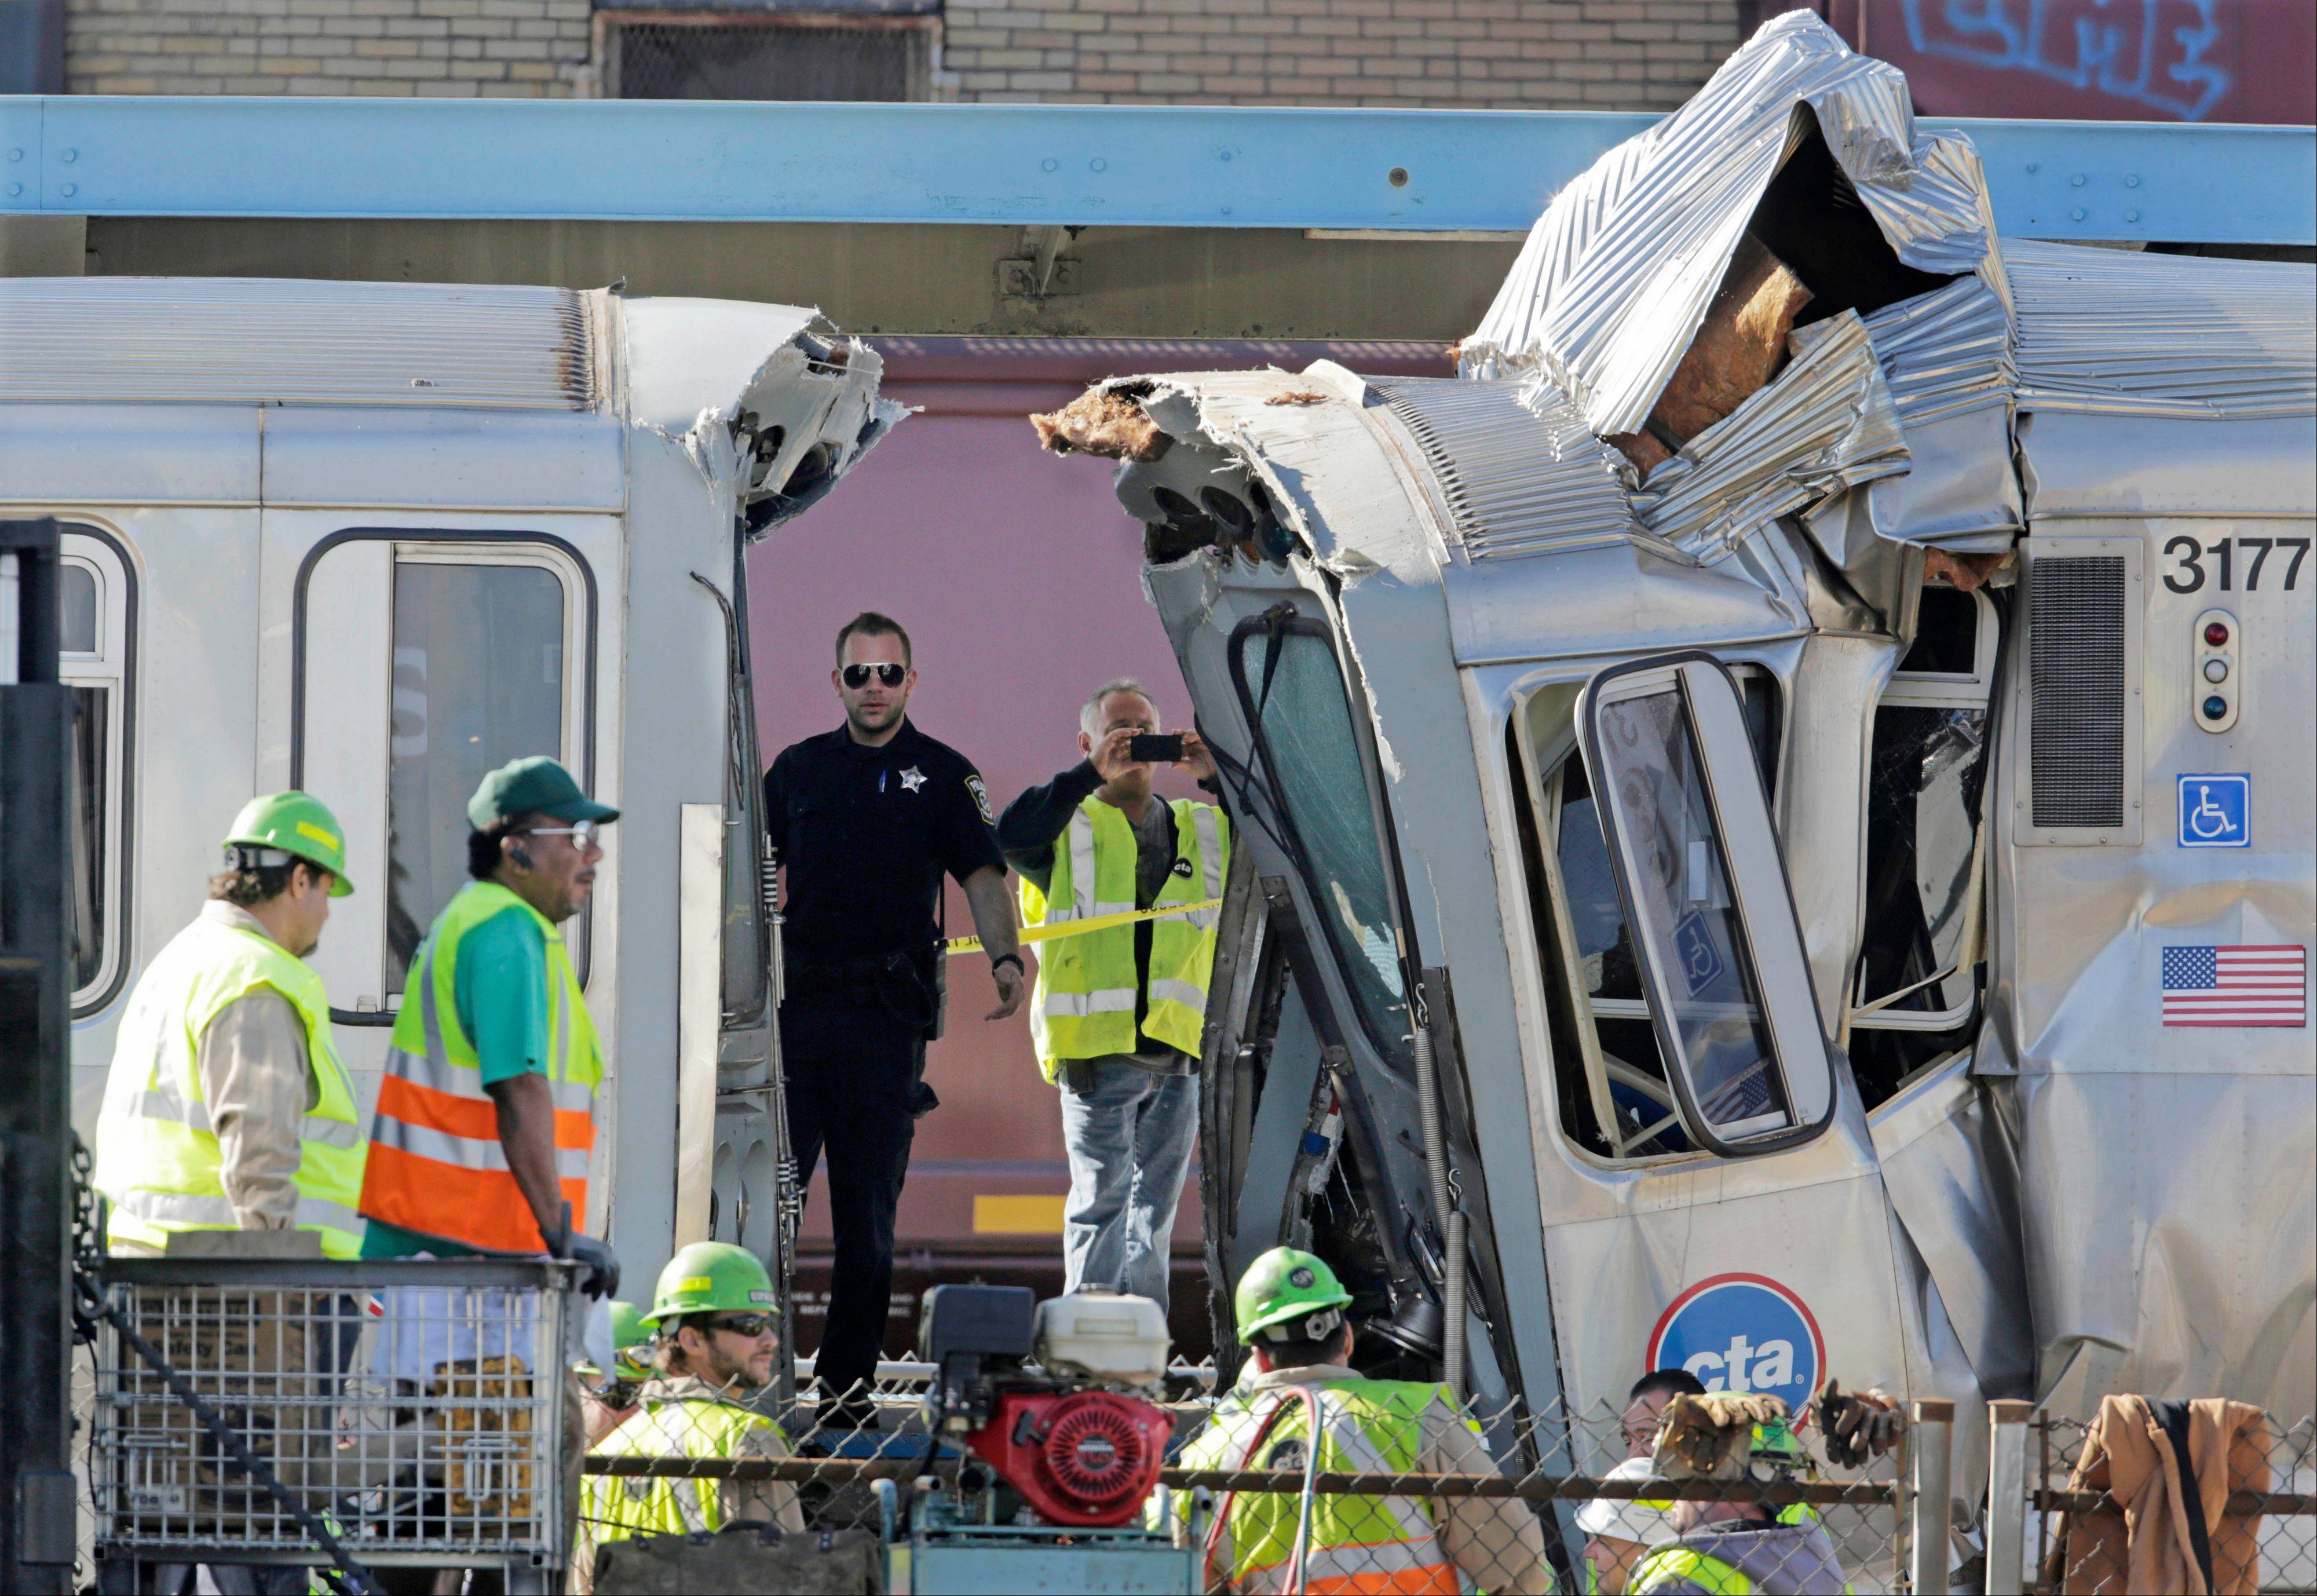 Authorities inspect the wreckage of two Chicago Transit Authority trains that crashed Monday